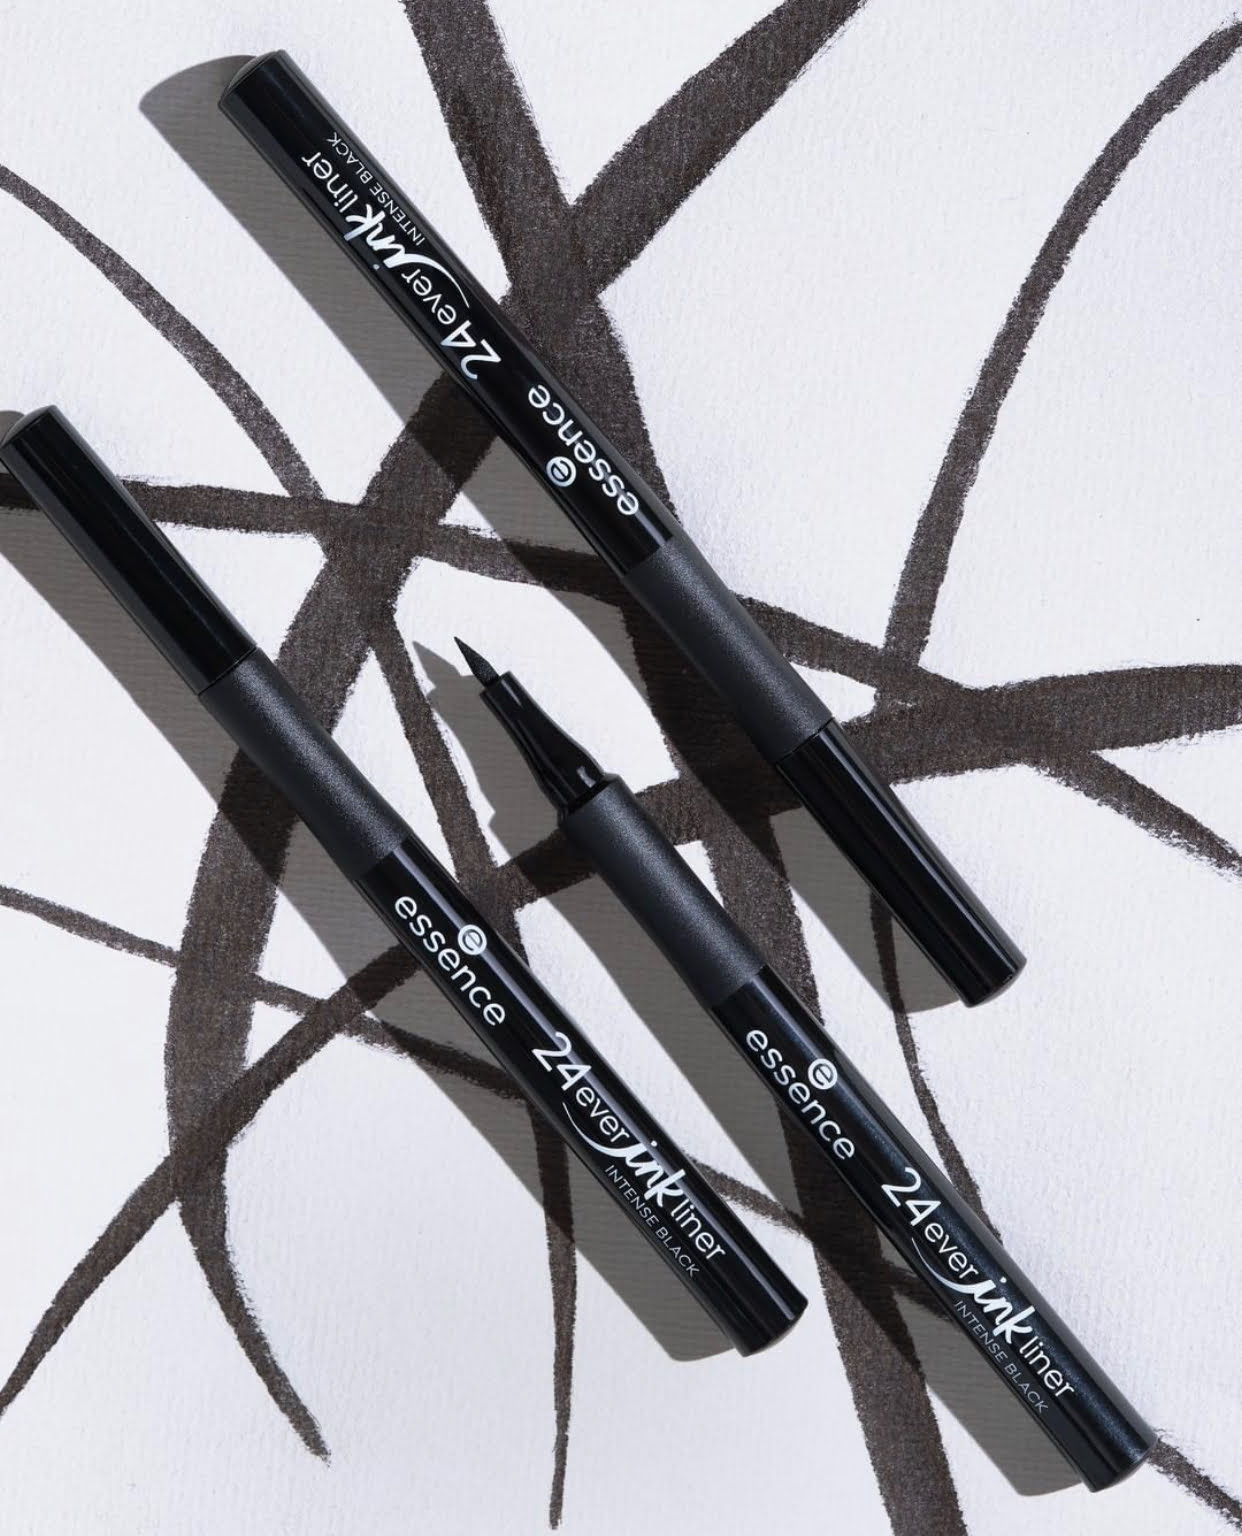 Essence 24ever Ink Liner